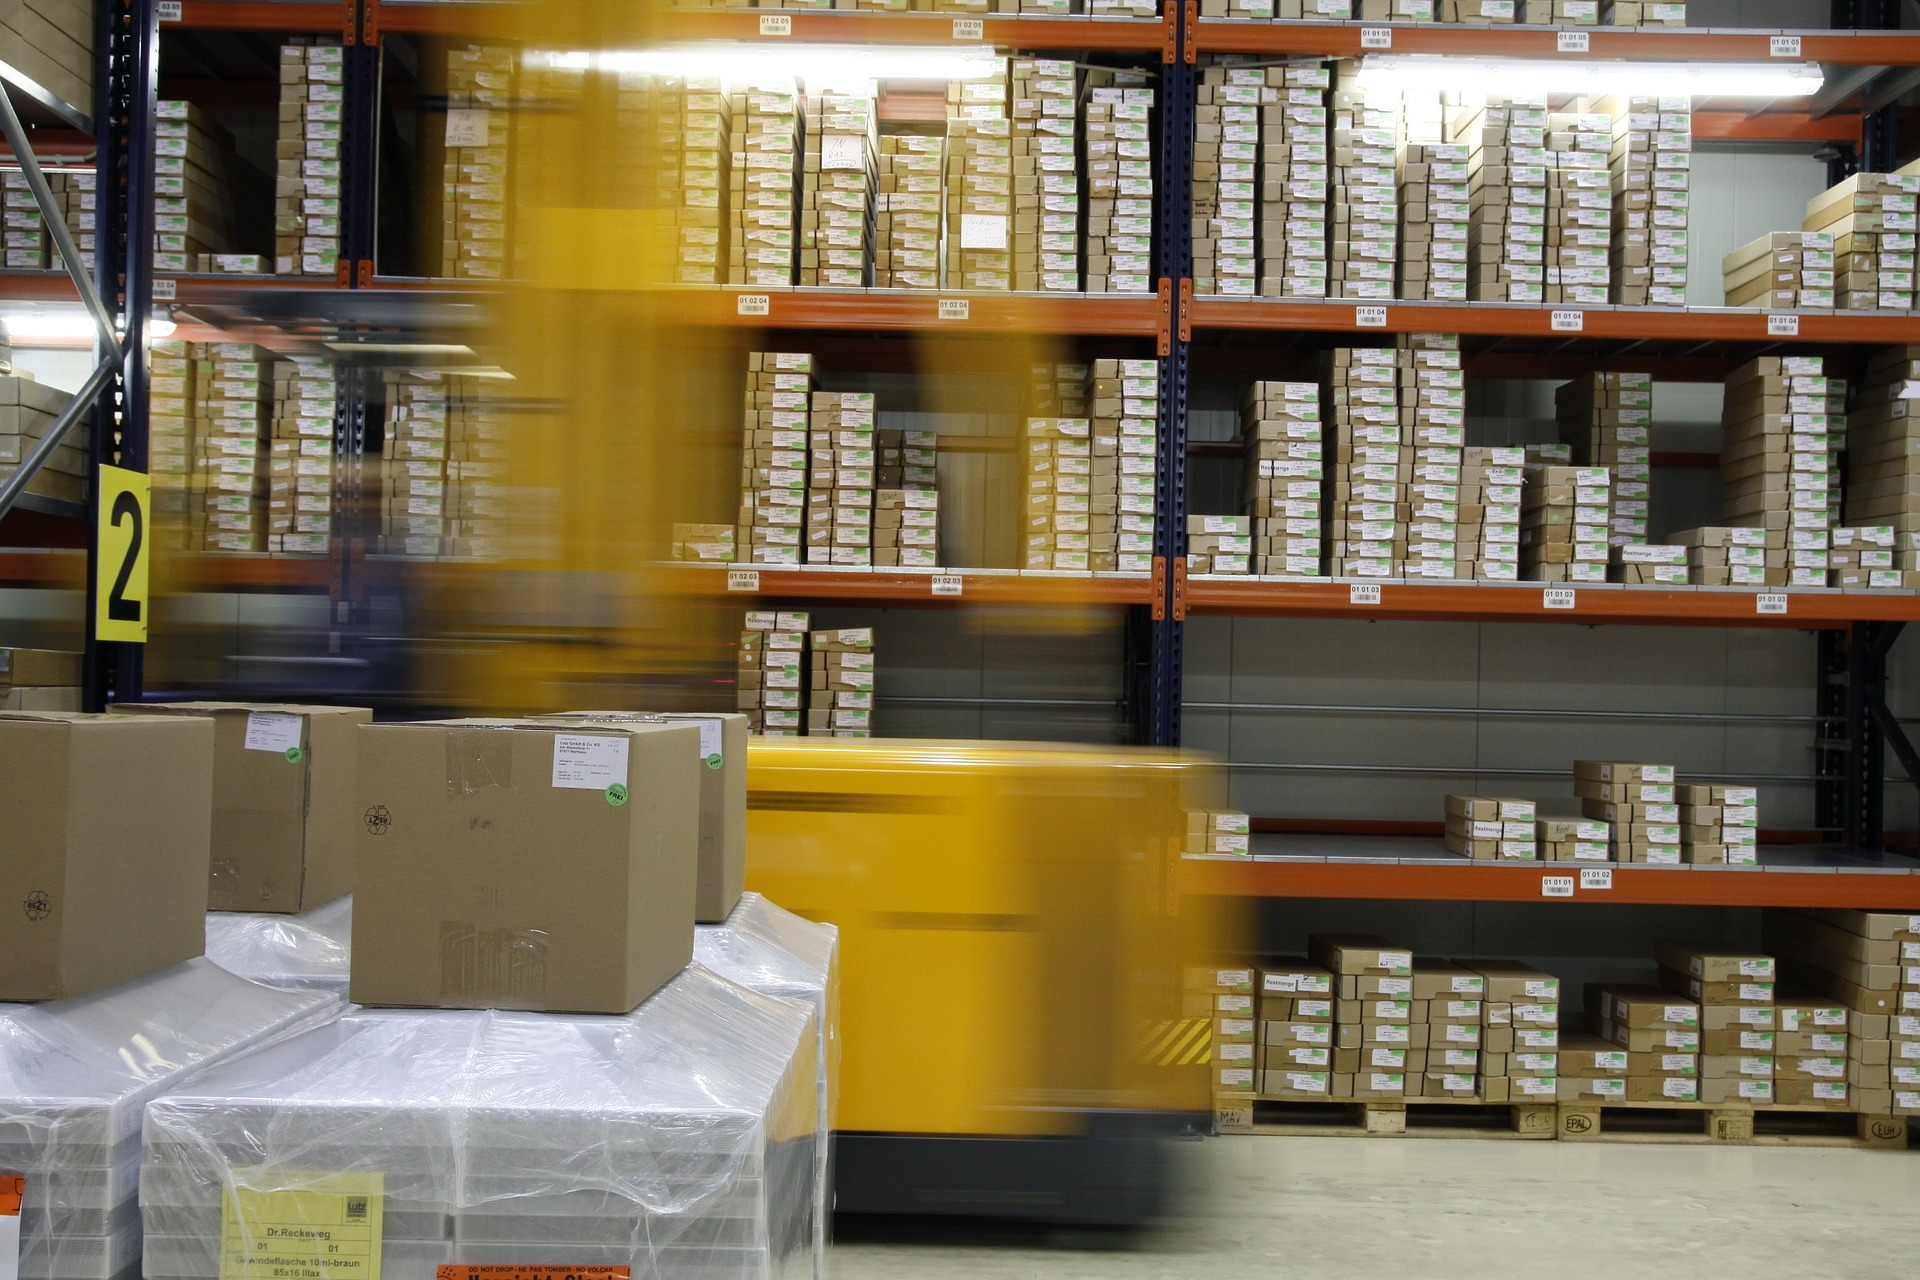 How to Prepare Your Business for Same-Day Deliveries